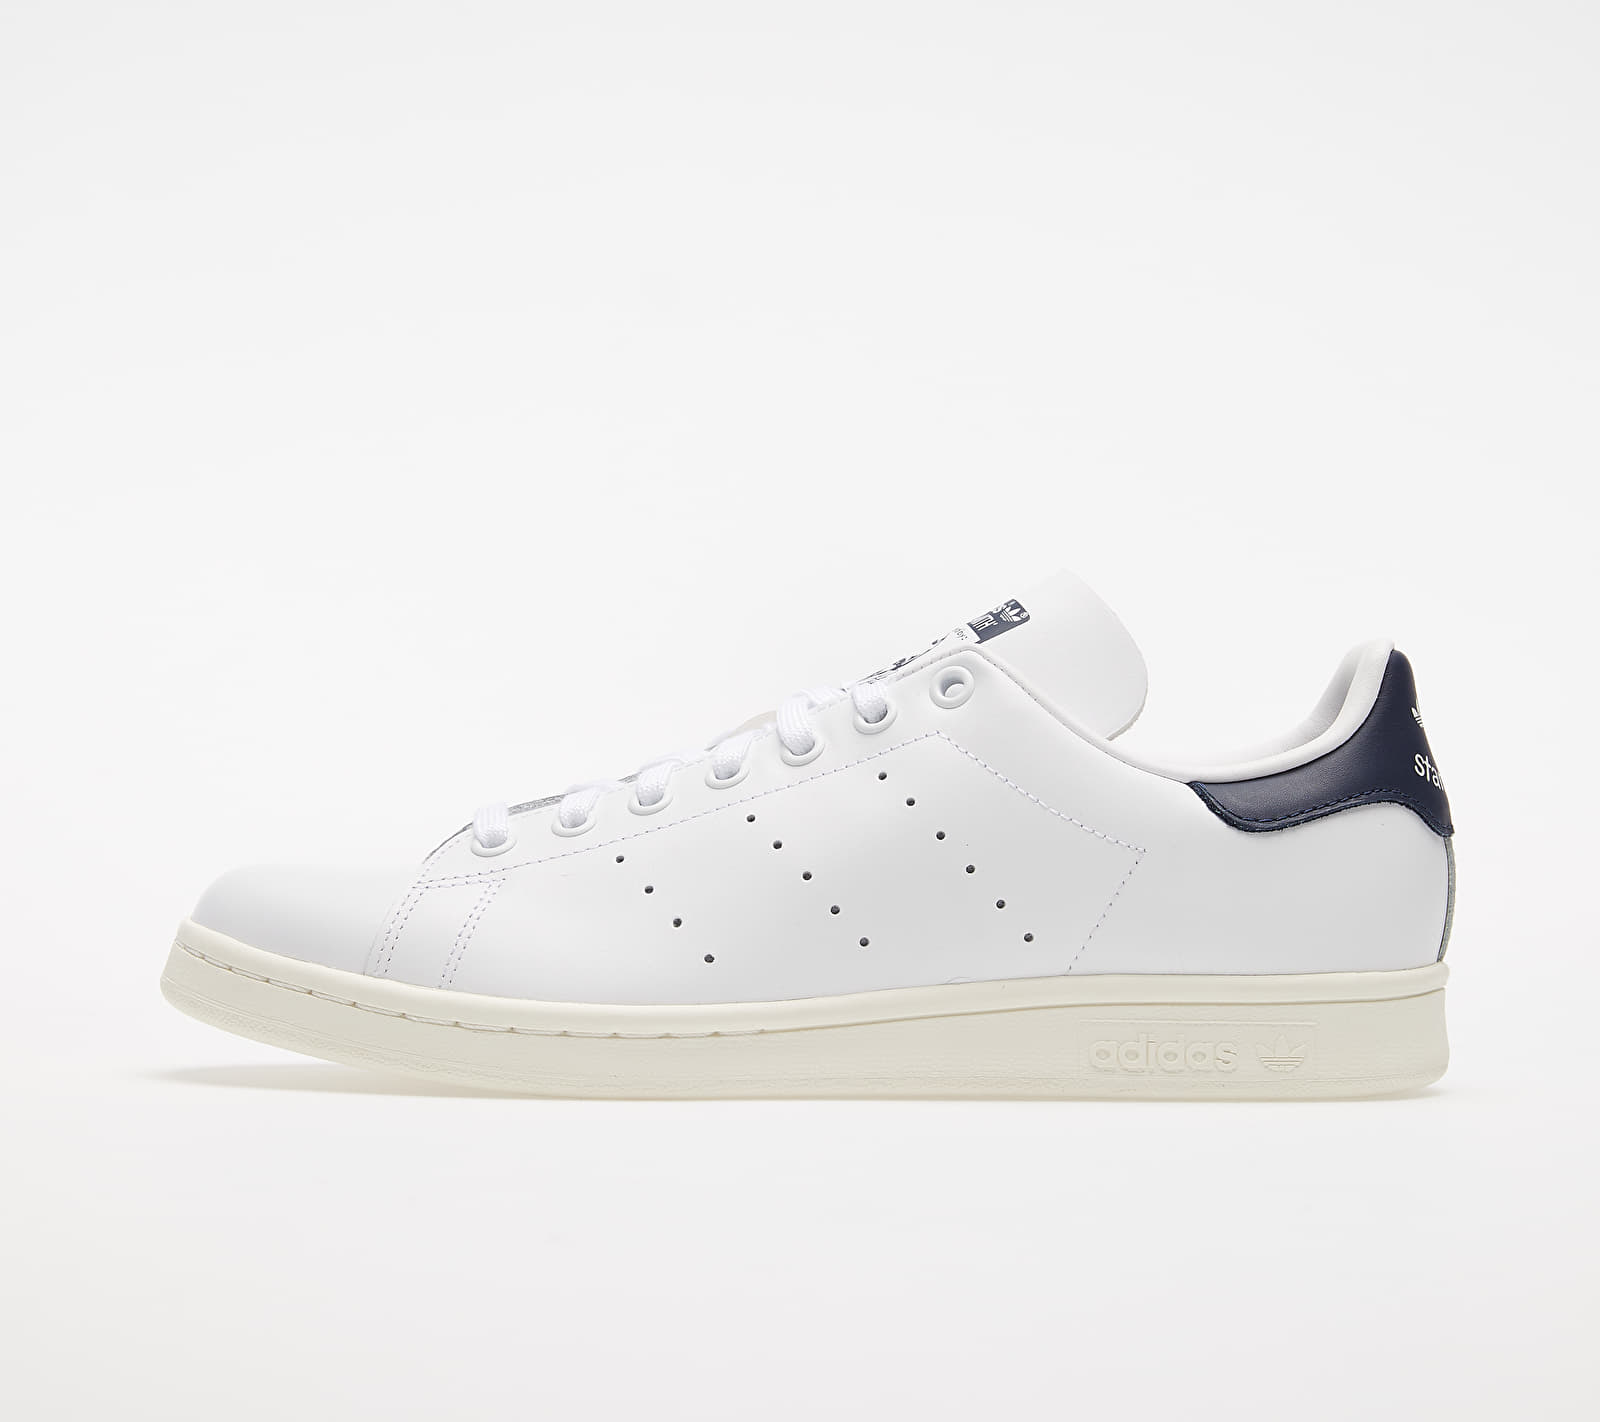 adidas Stan Smith Ftw White/ Off White/ Collegiate Navy EUR 46